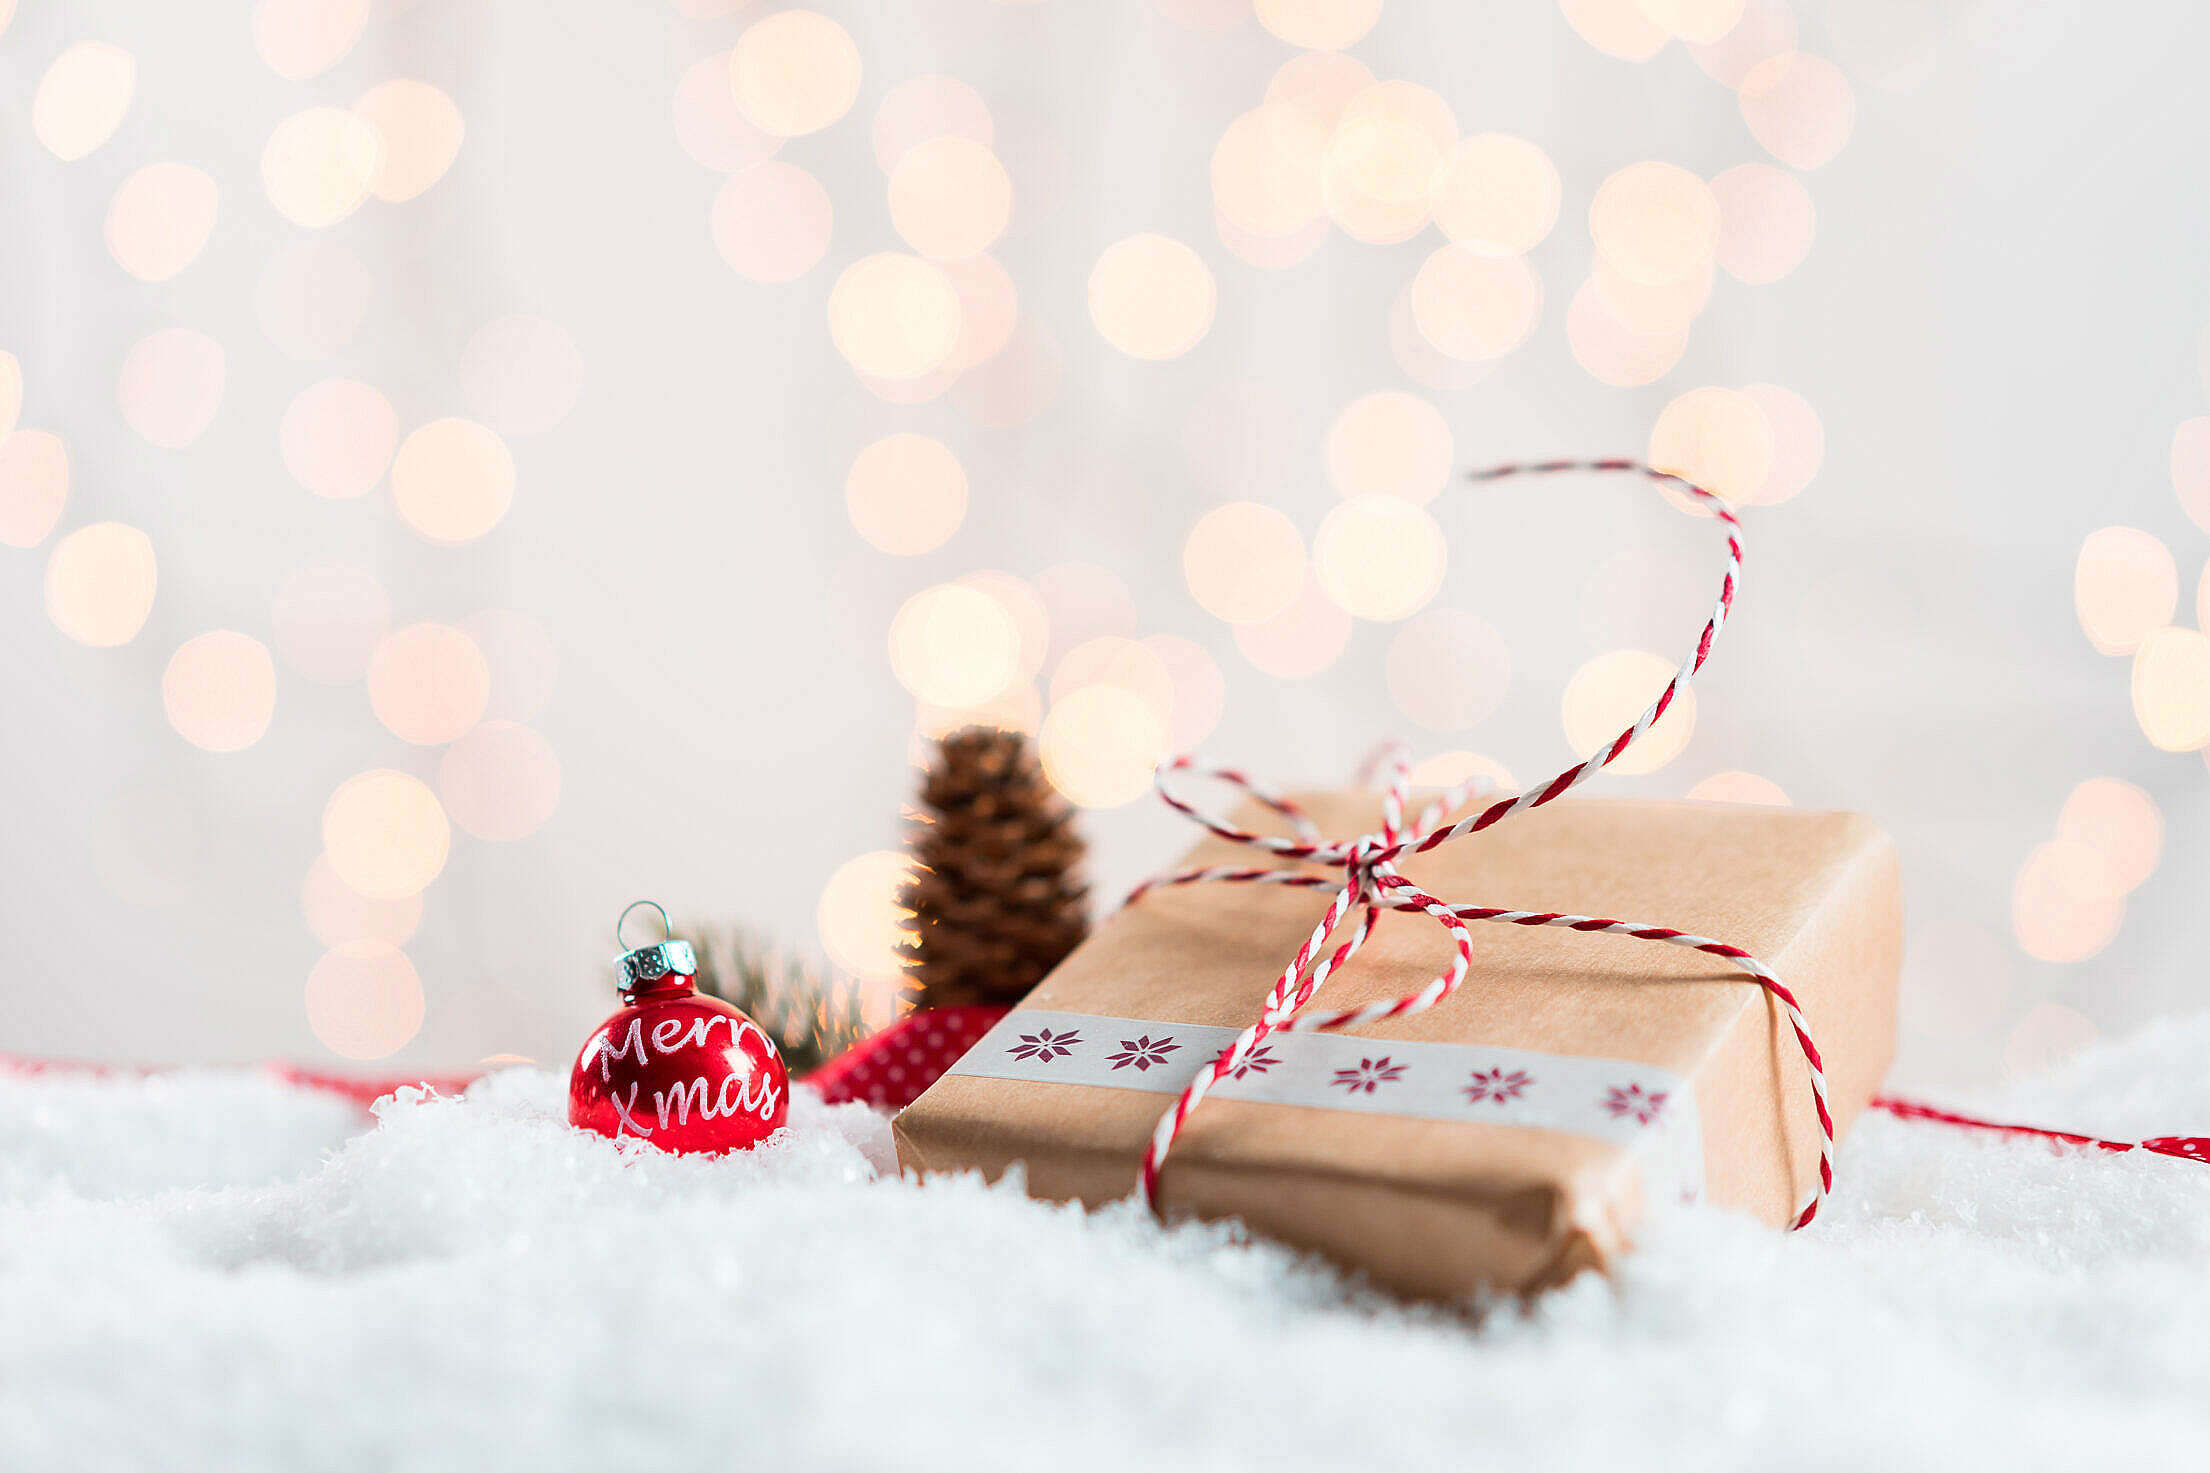 Christmas Present in Snow with Bokeh Background Free Stock Photo